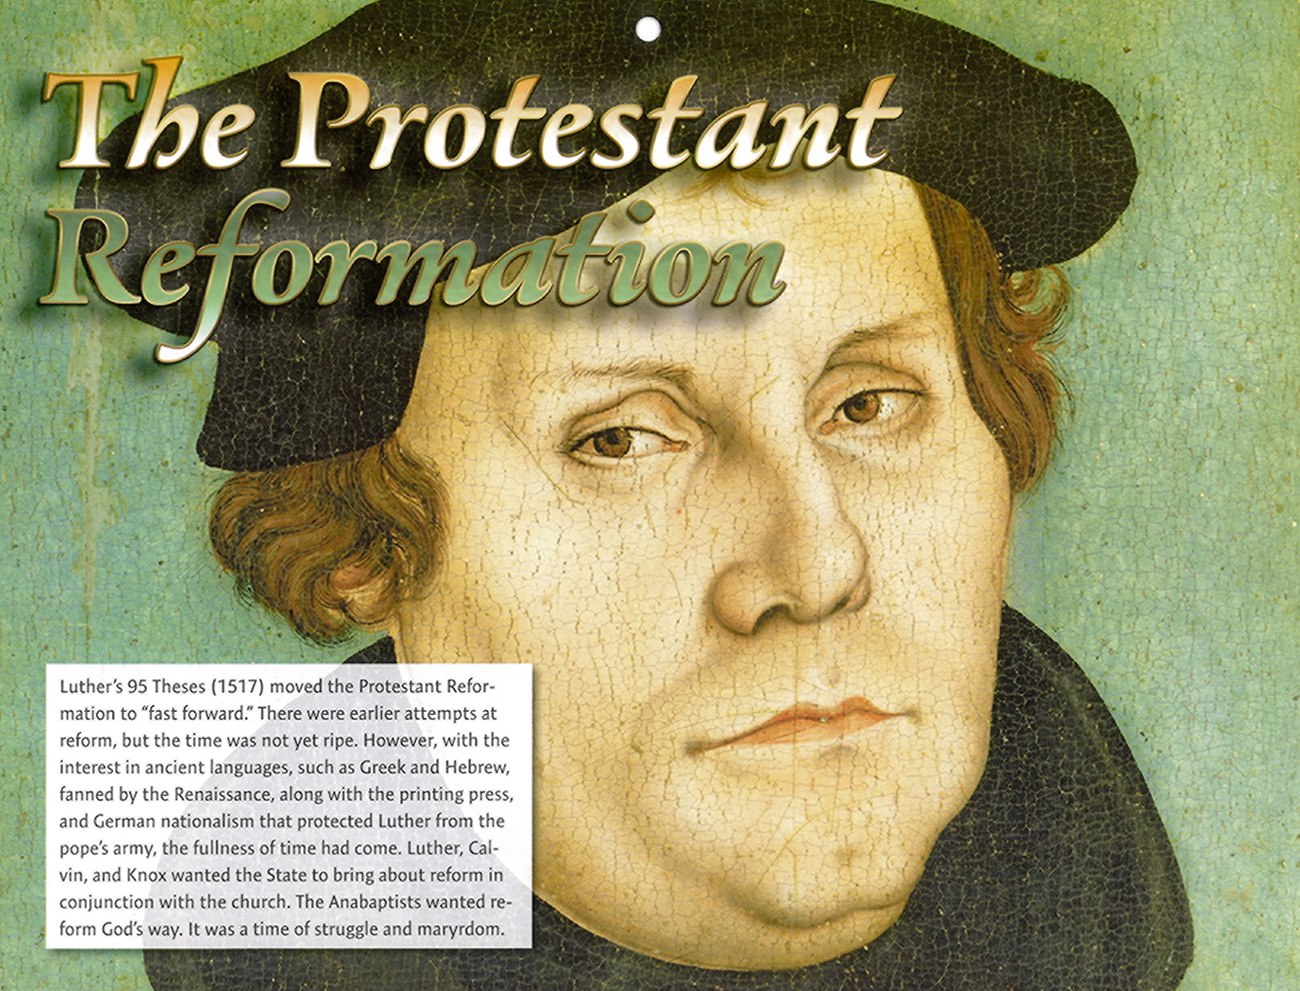 2016 Prophecy Calendar: August - The Protestant Reformation